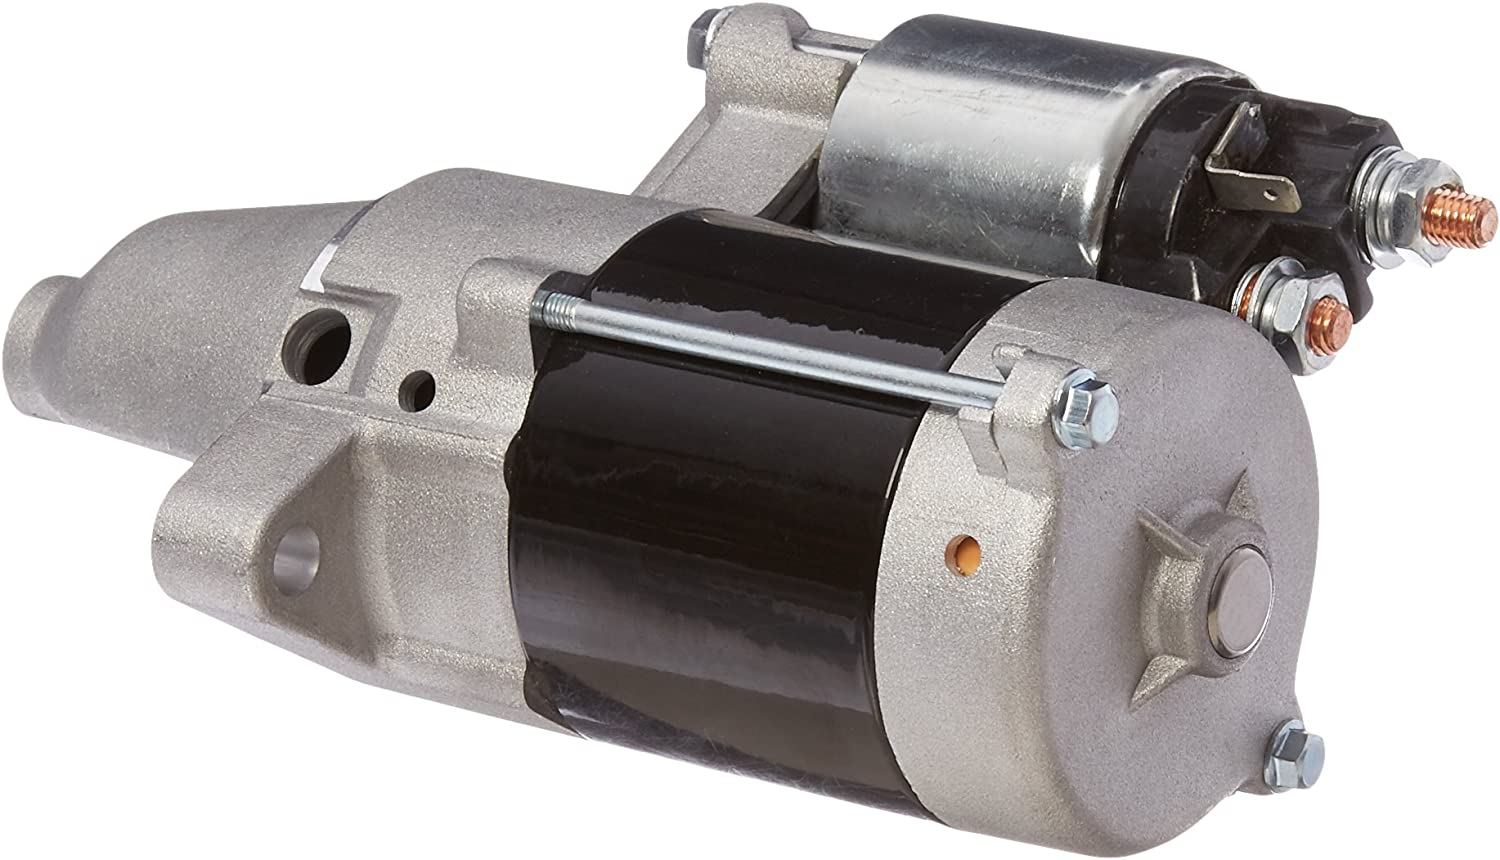 DB Electrical SND0529 Starter for Briggs & Stratton Air Cooled ...